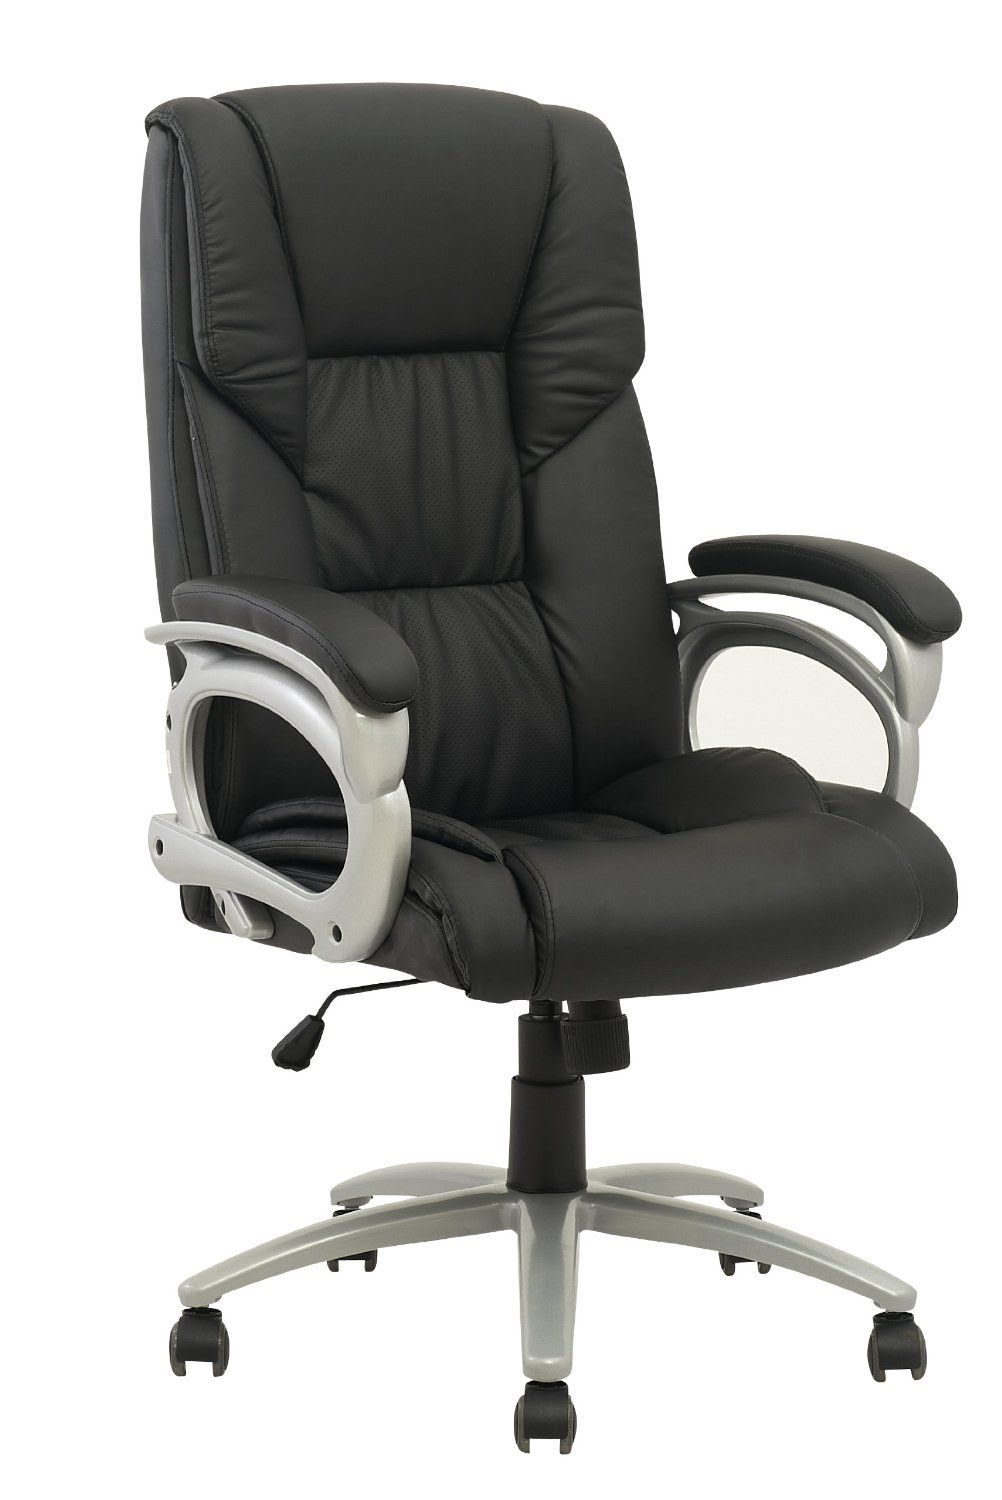 Most Expensive Ergonomic Office Chair